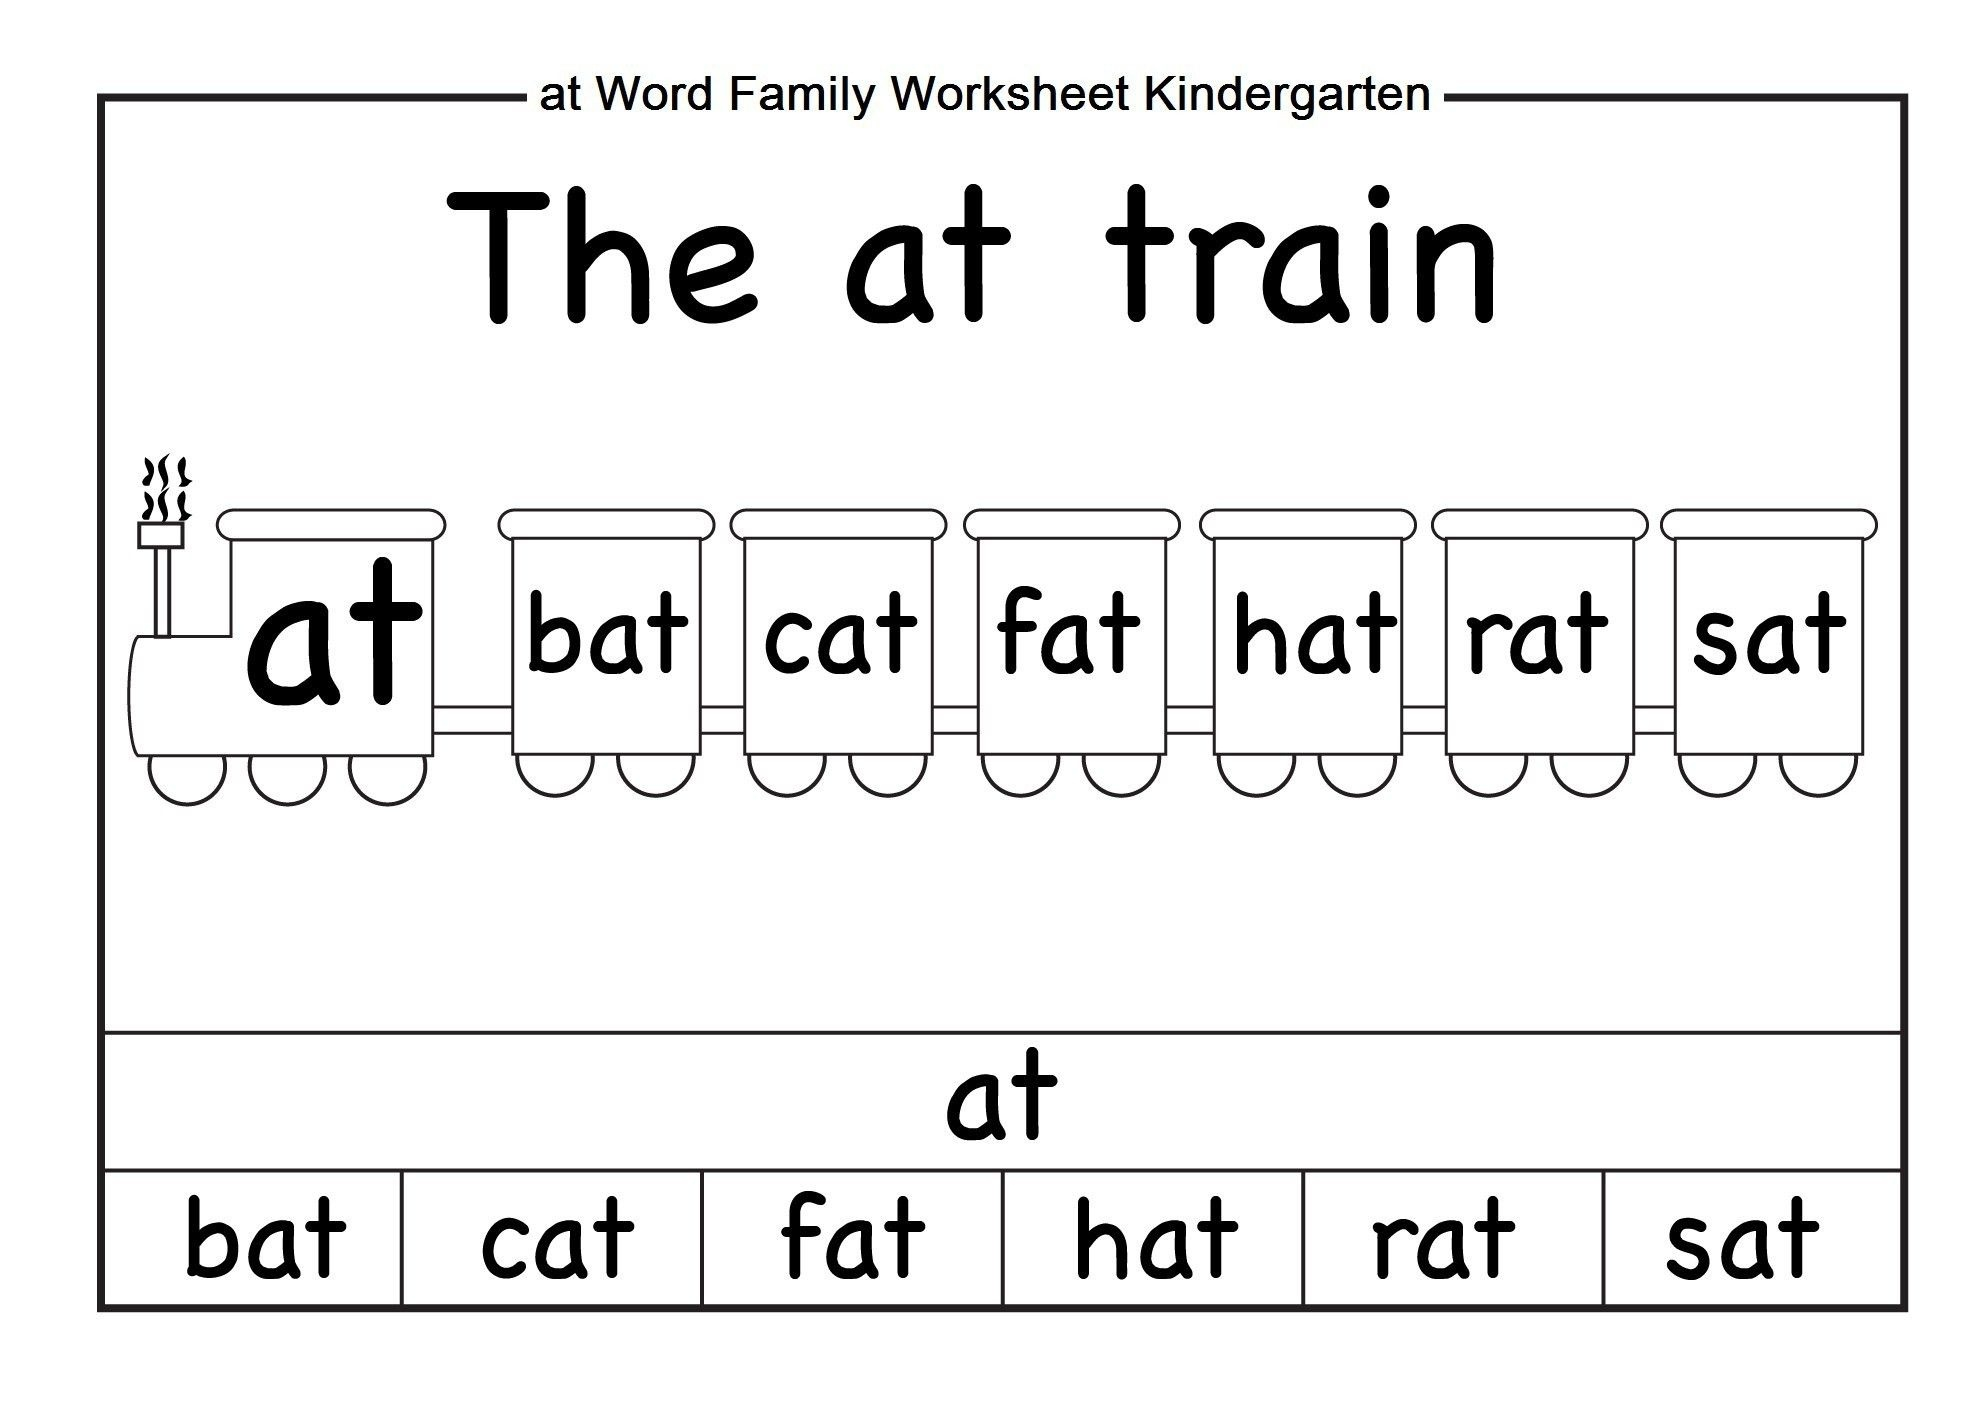 Word Family Worksheets Kindergarten | Briefencounters - Free ...